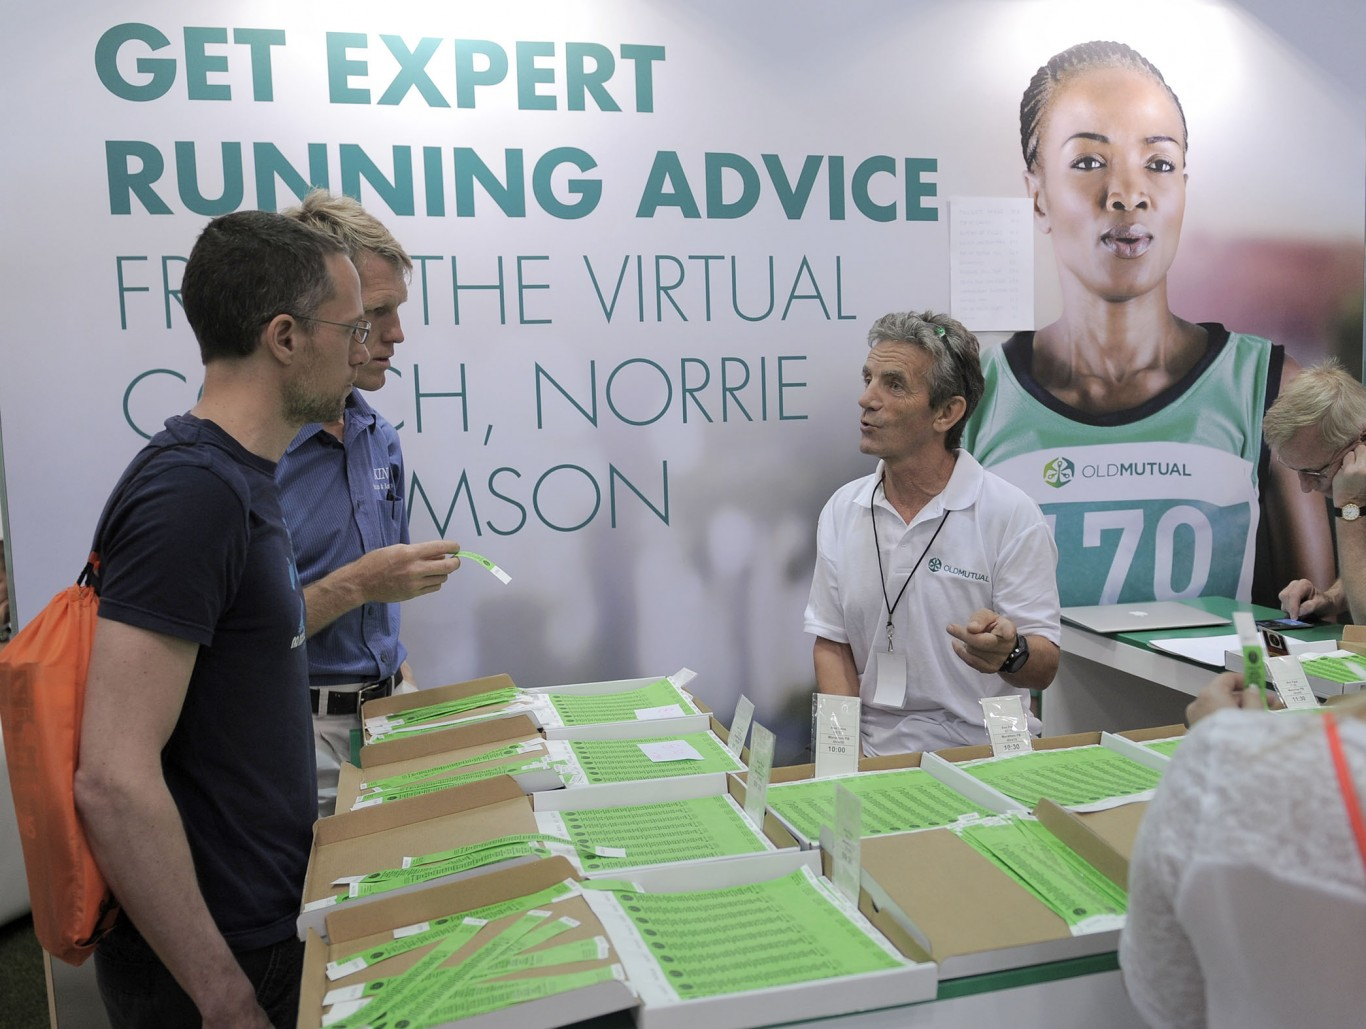 OM Expo with virtual coach Norrie Williams